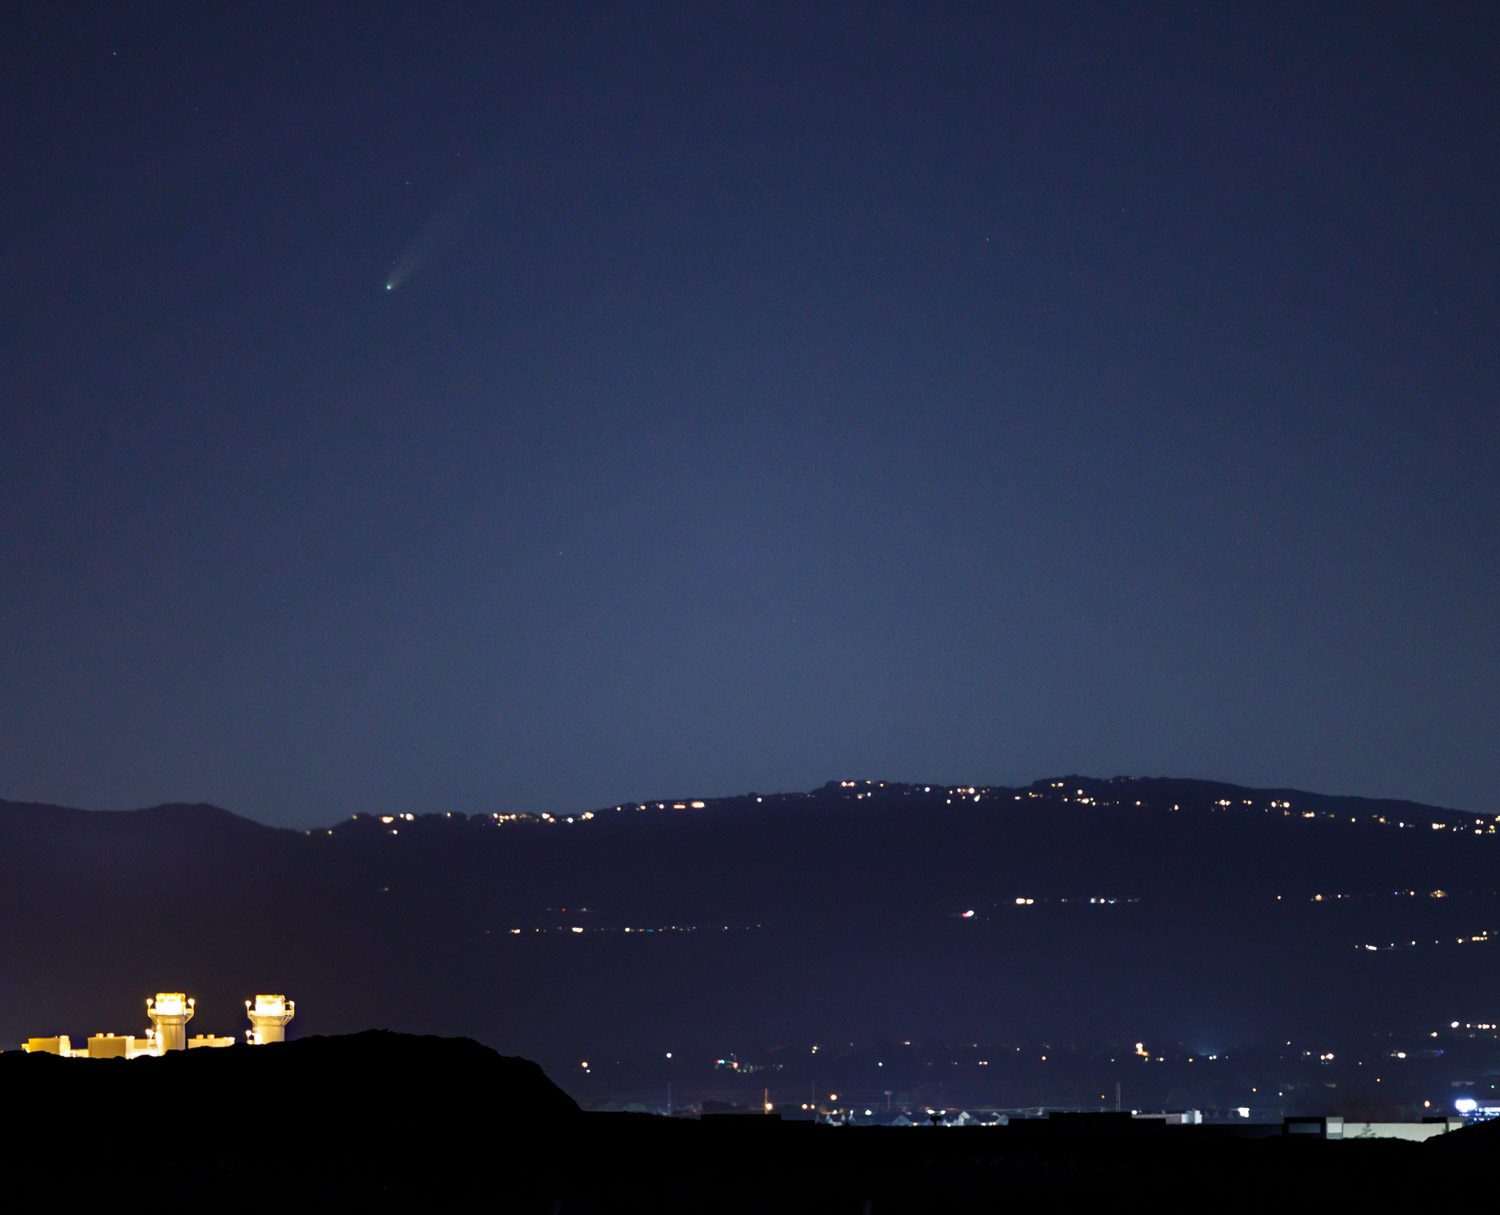 Neowise Comet over Utah County